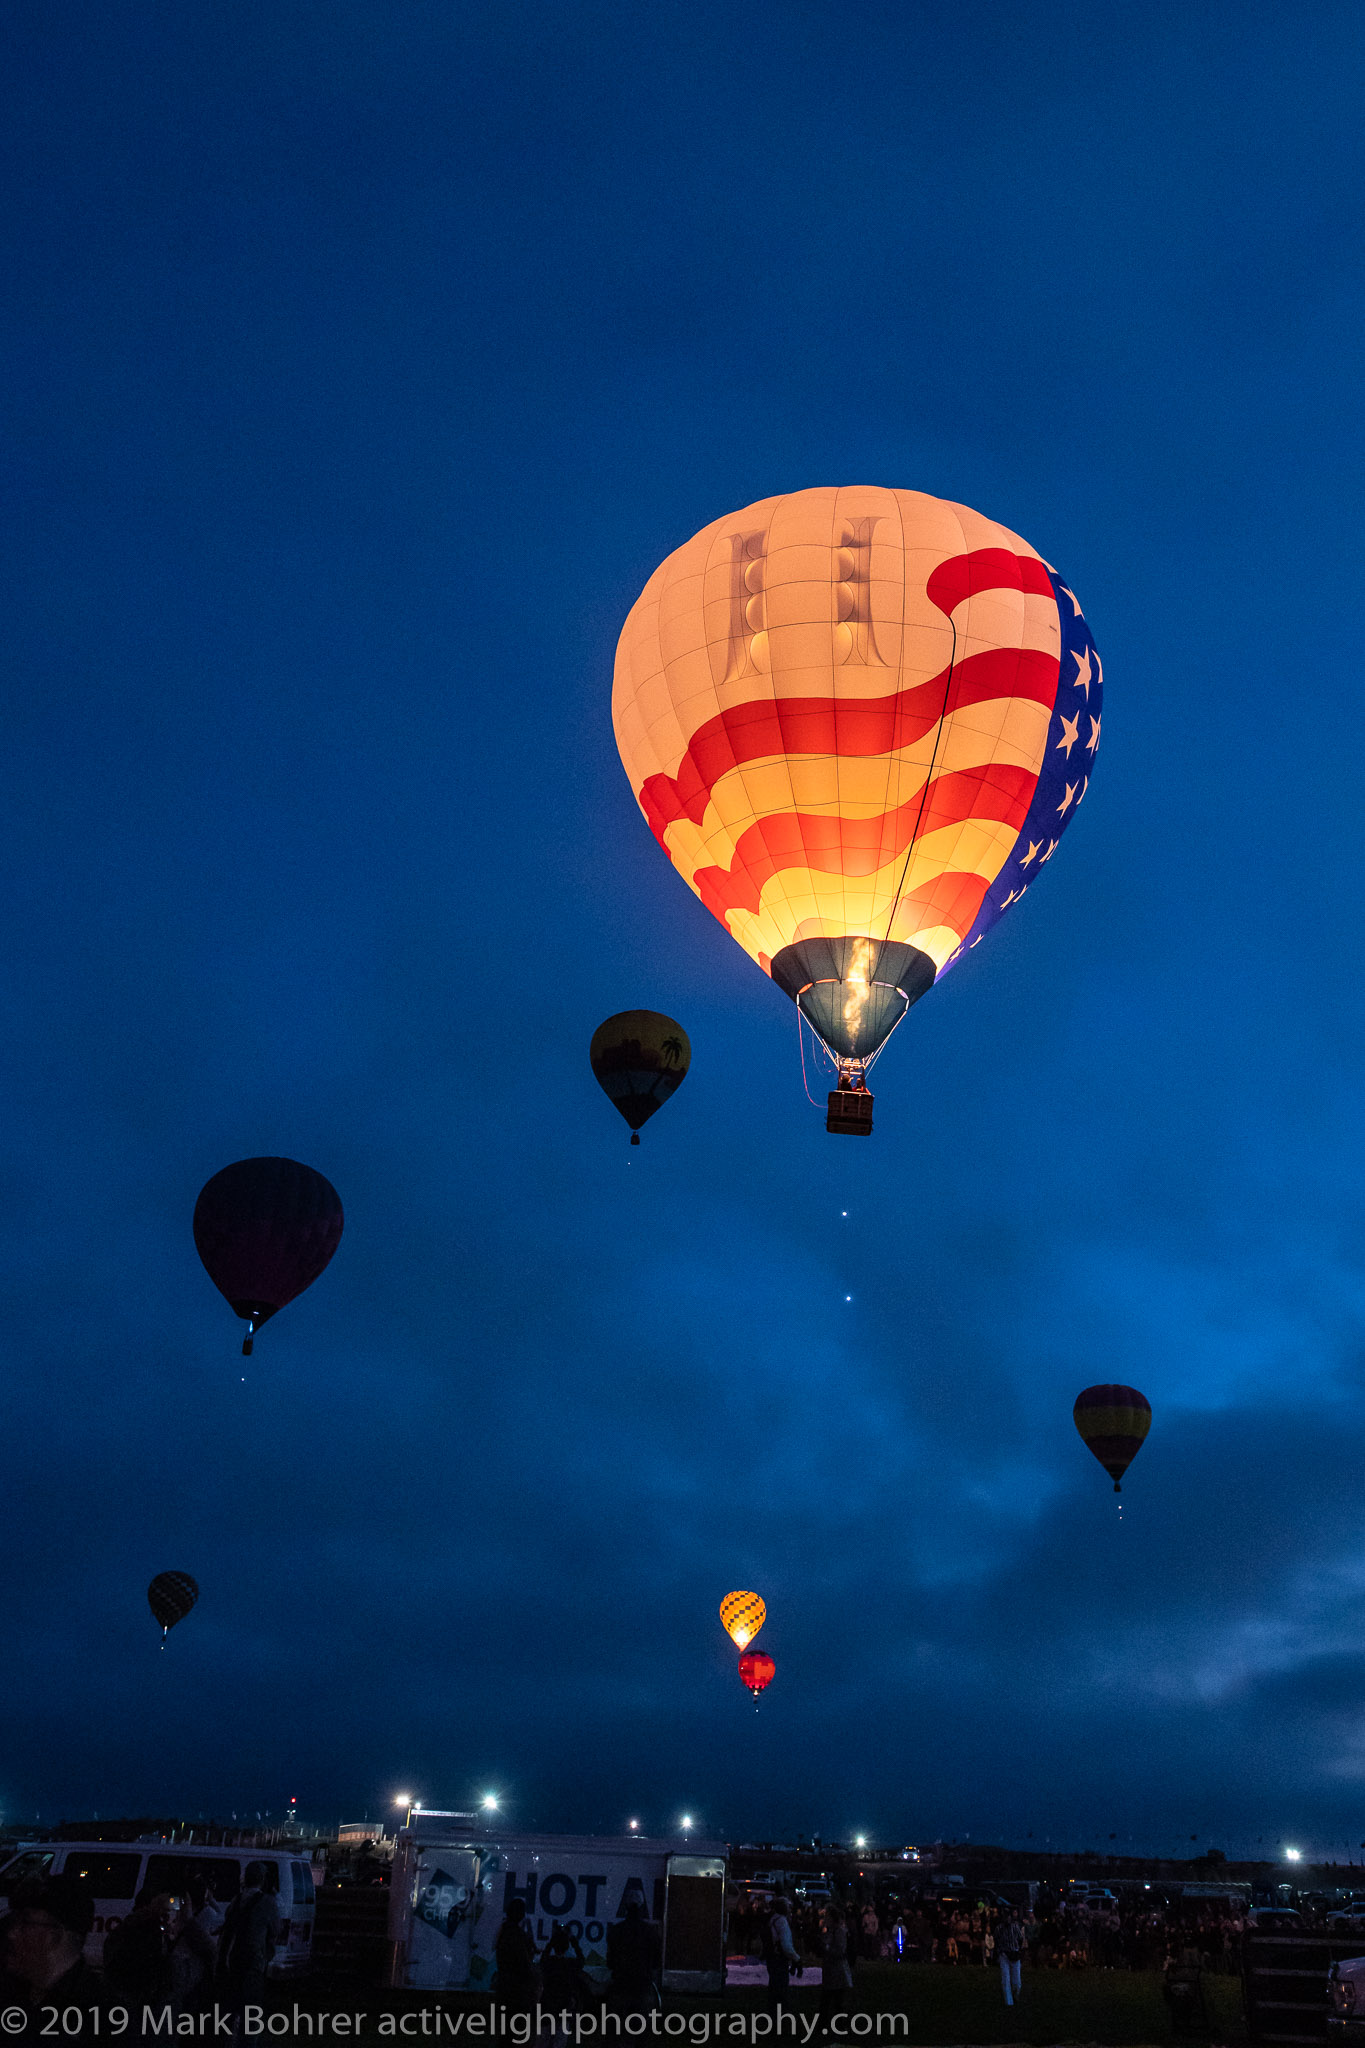 Flying high now - Albuquerque International Balloon Fiesta - Active Light Photography